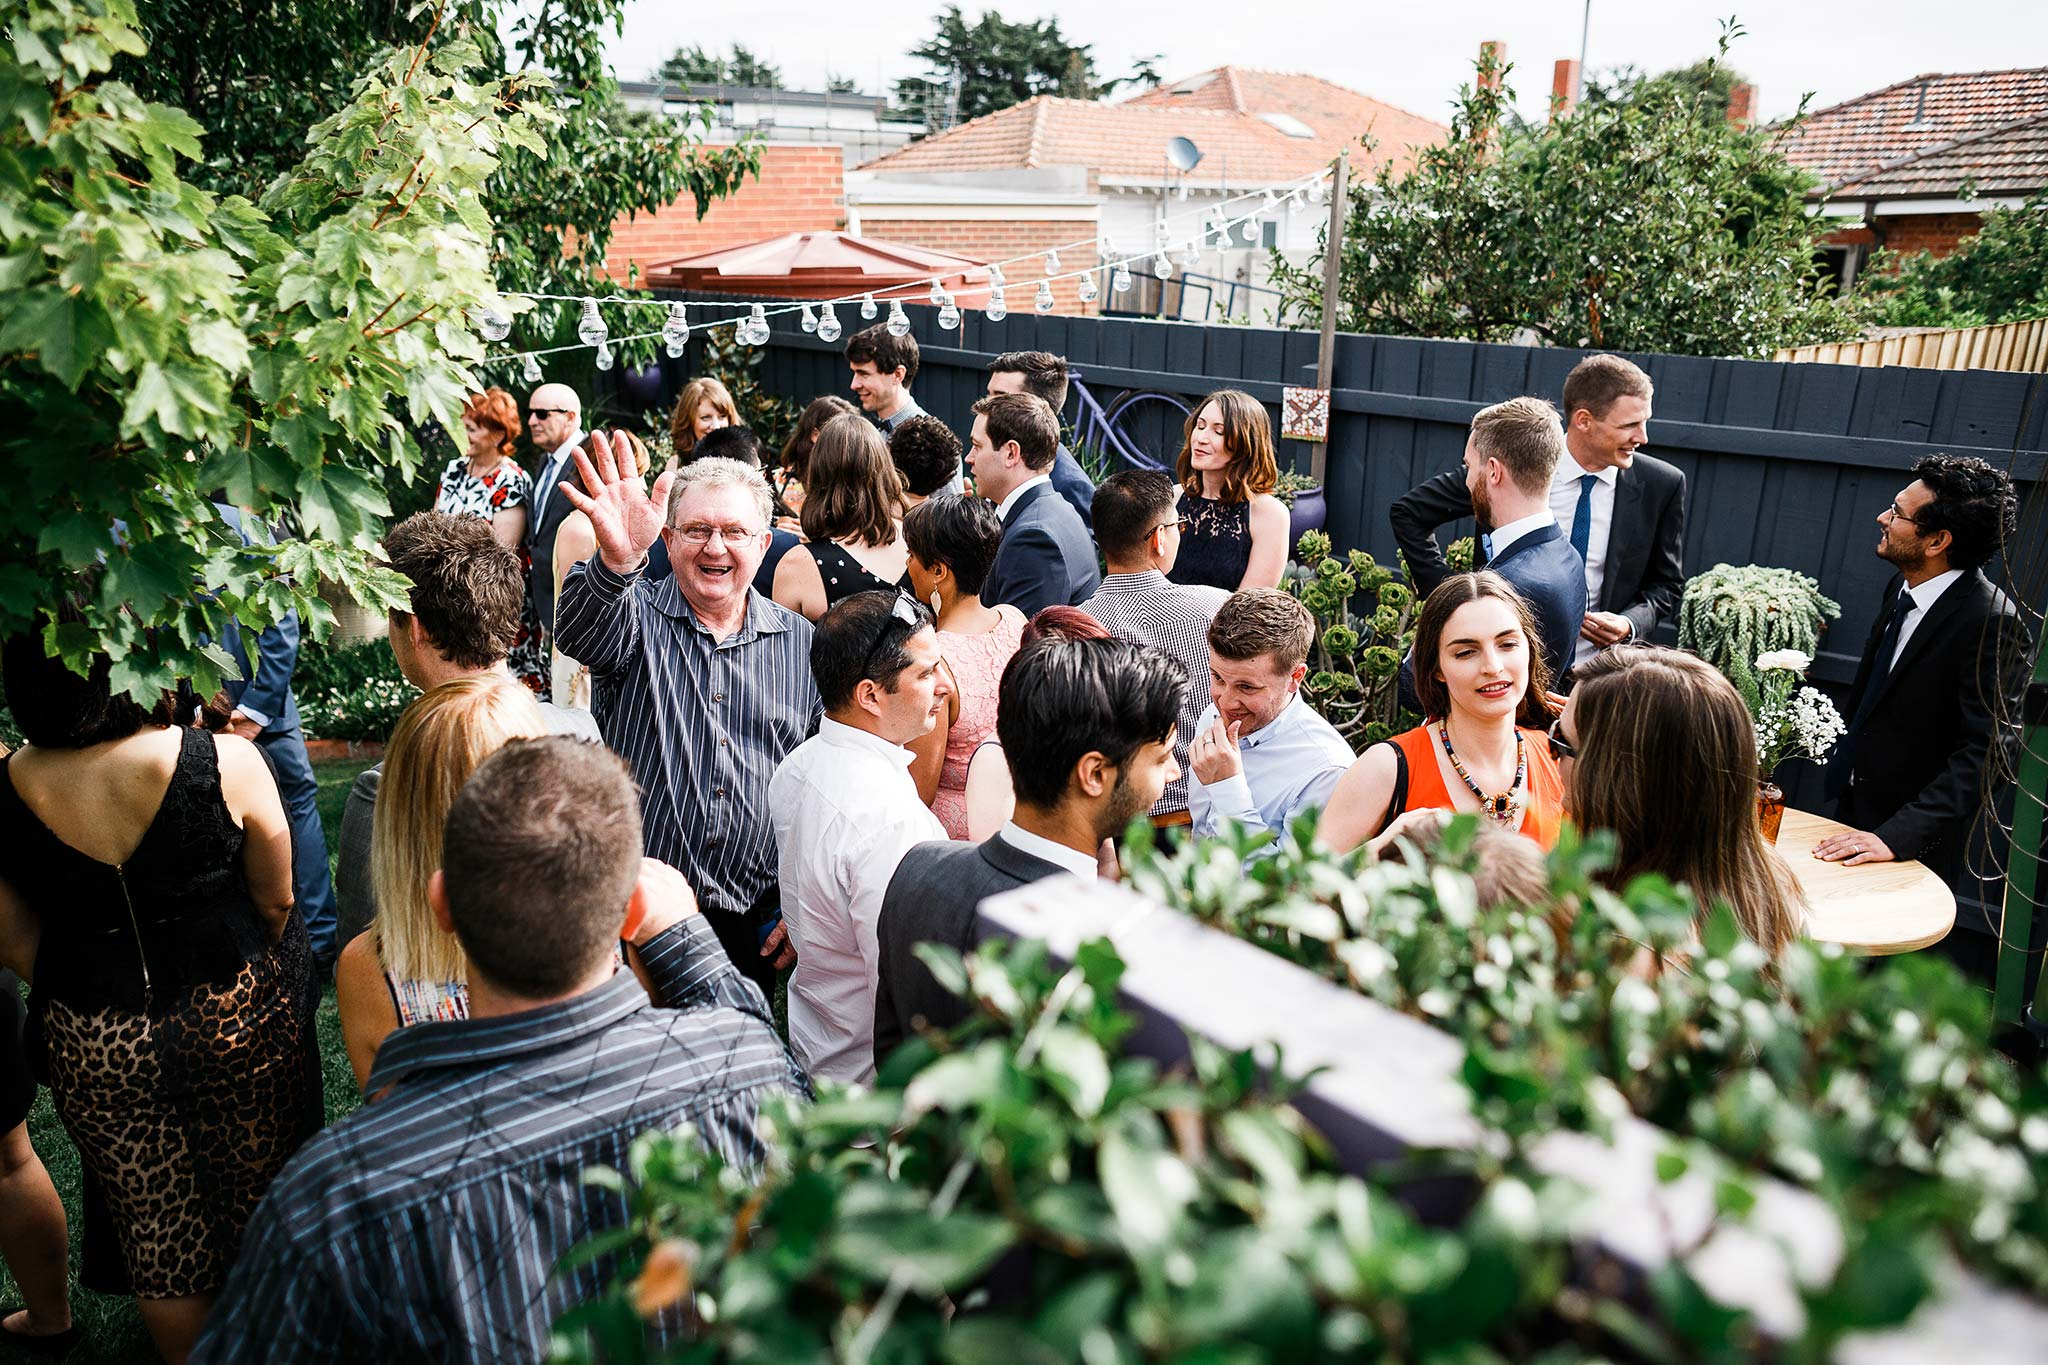 Strathmore-Melbourne-Backyard-Wedding-guests-waiting